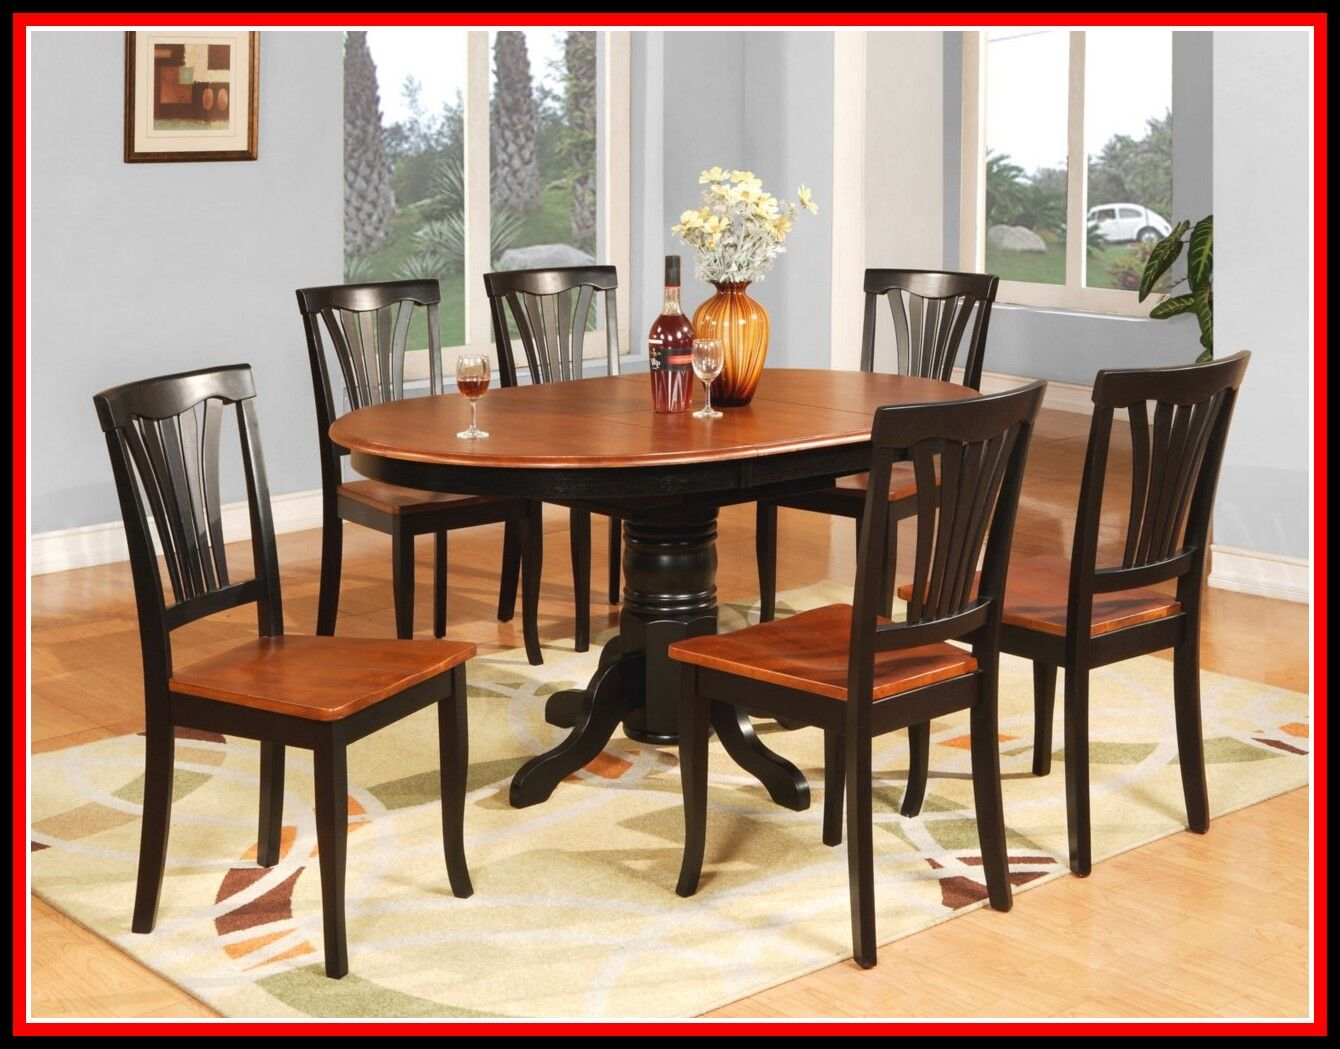 123 Reference Of Dining Table And 6 Chairs Furniture Village In 2020 Kitchen Table Oak Oval Dining Room Table Kitchen Table Settings